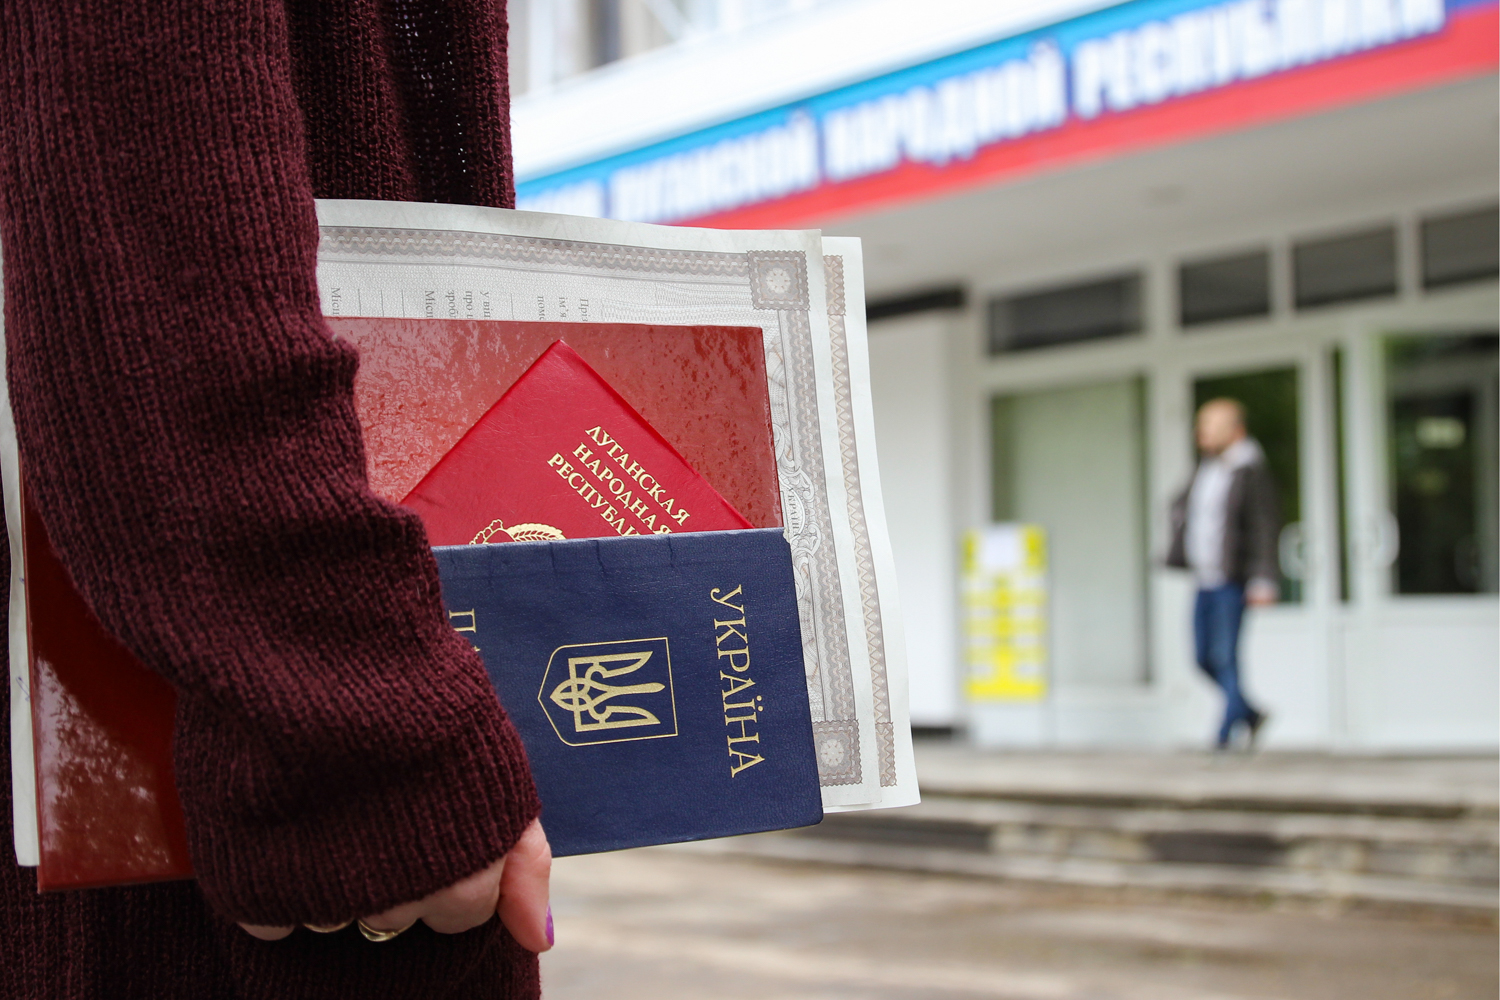 It was quite a hassle to obtain a Russian passport for residents of the isolated districts of the Donetsk and Lugansk regions